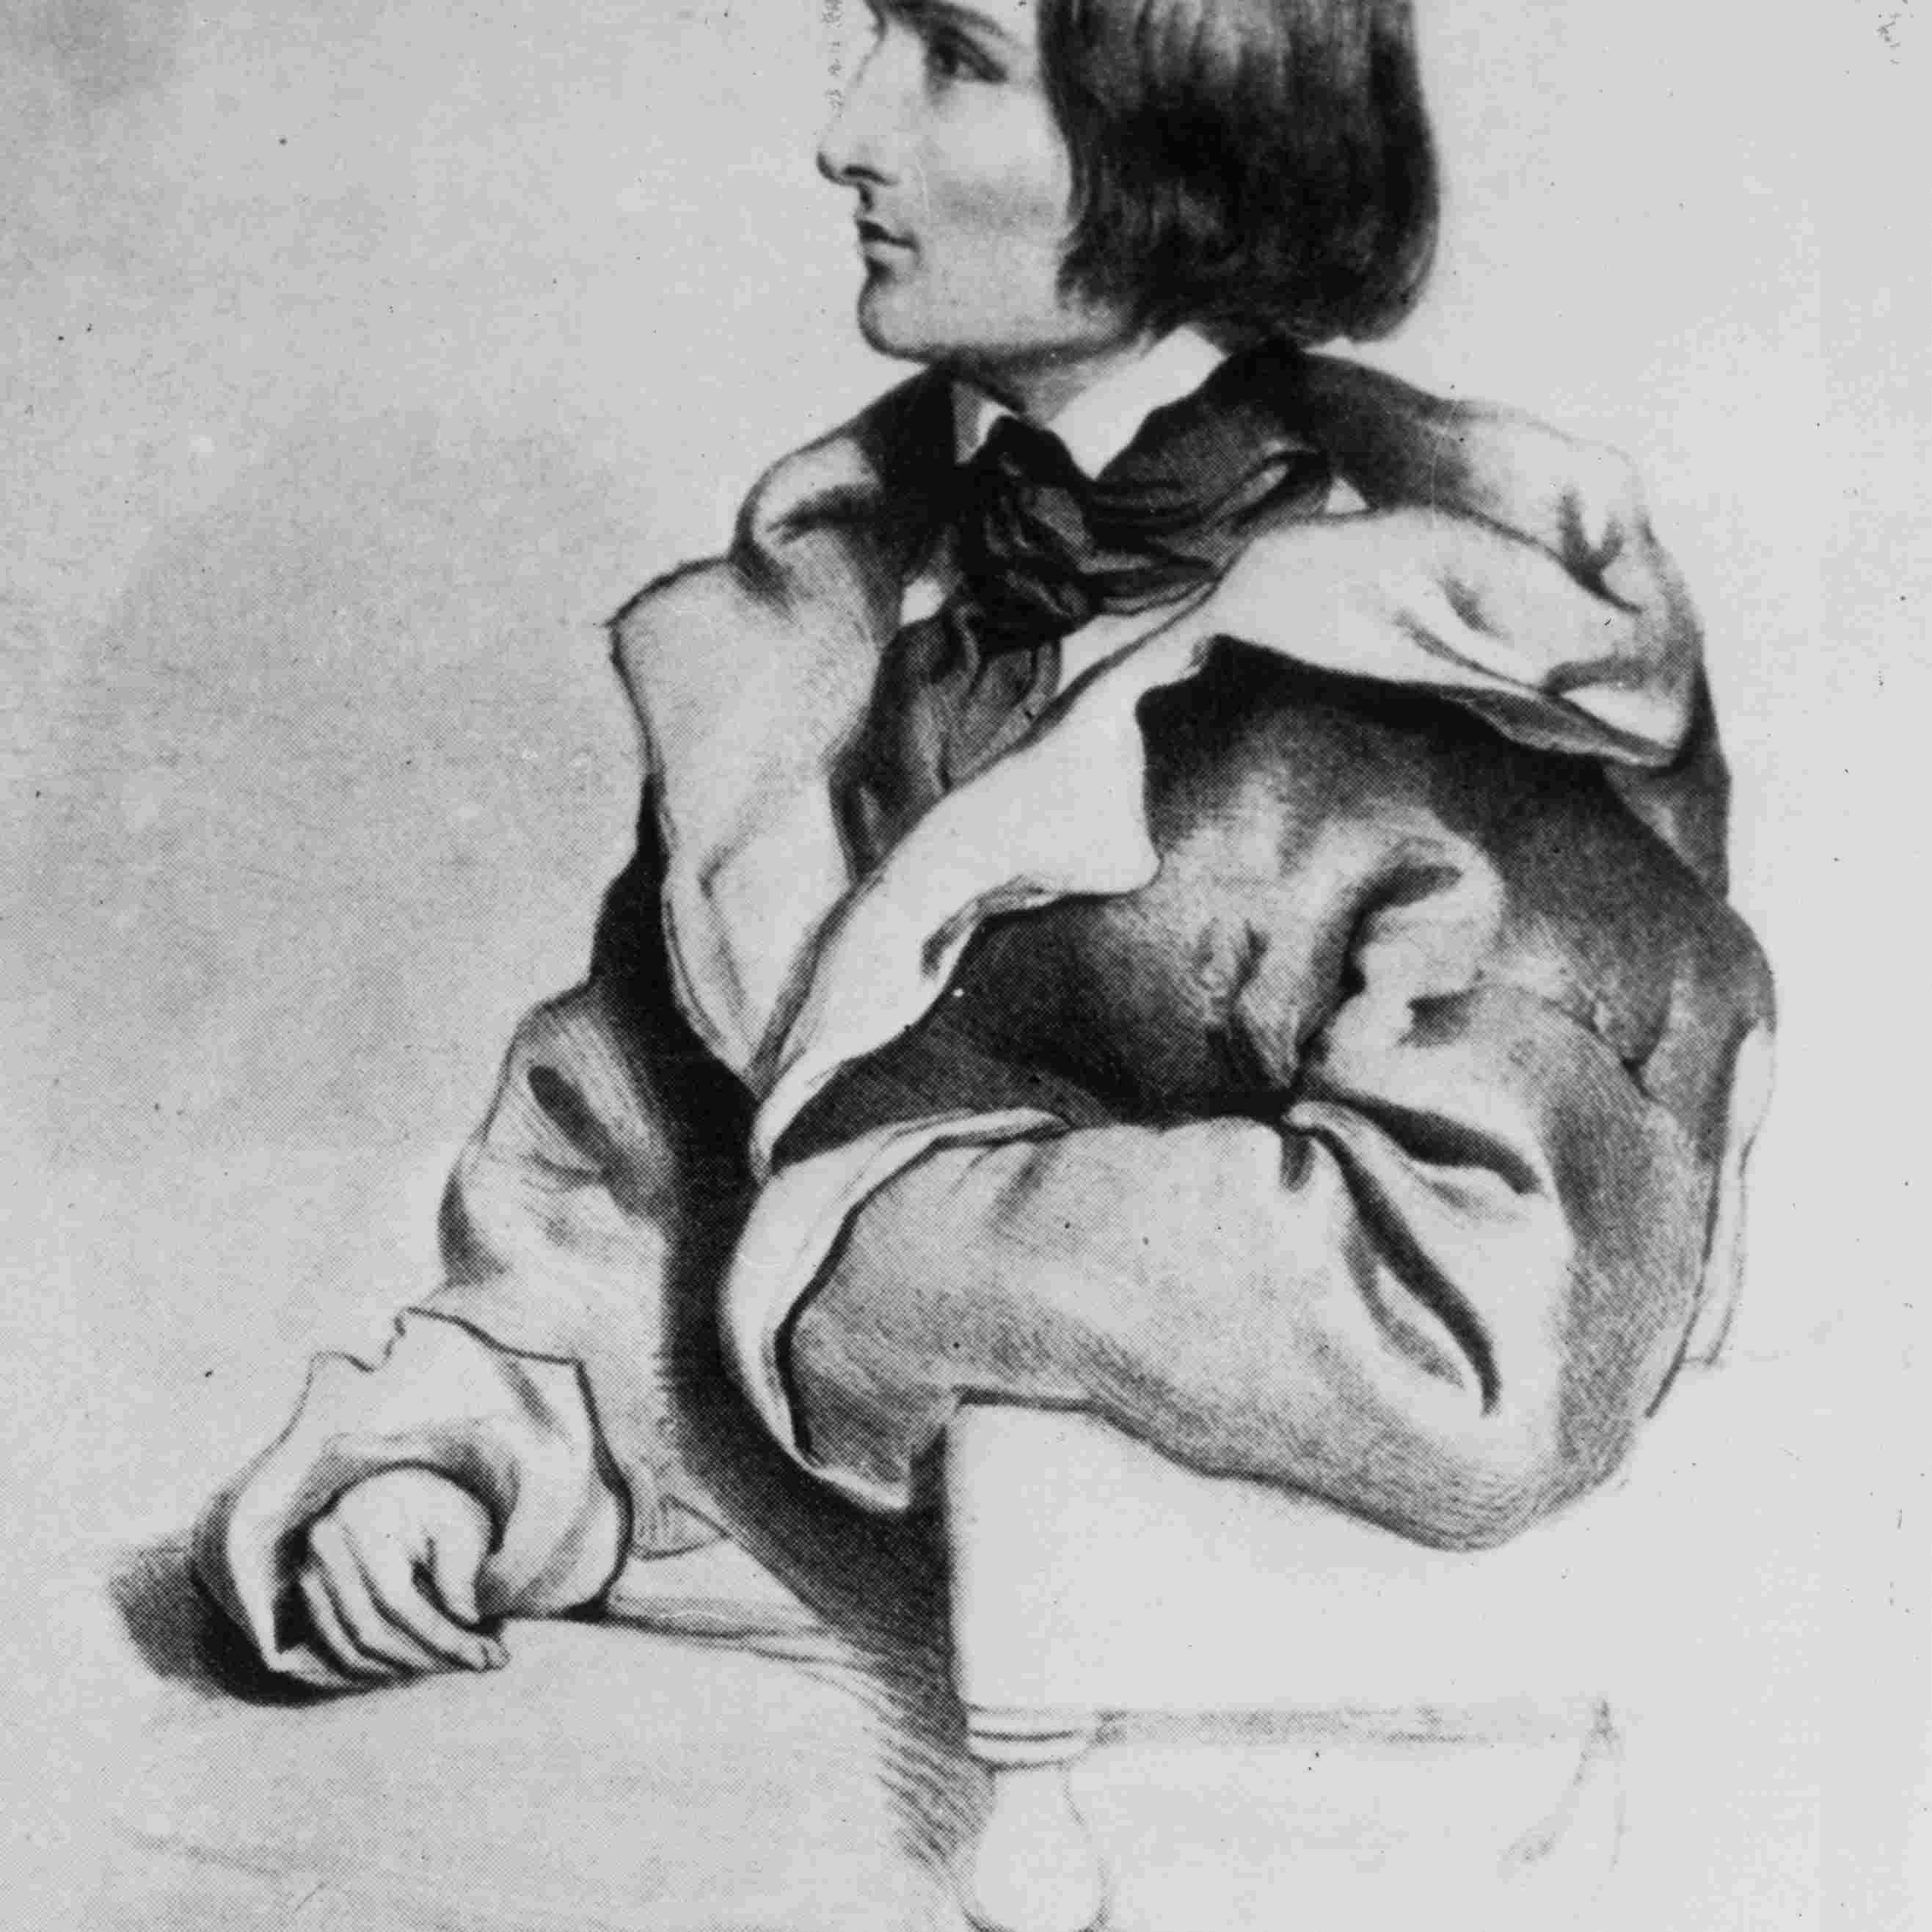 Hungarian composer and pianist Franz Liszt (1811 - 1886)